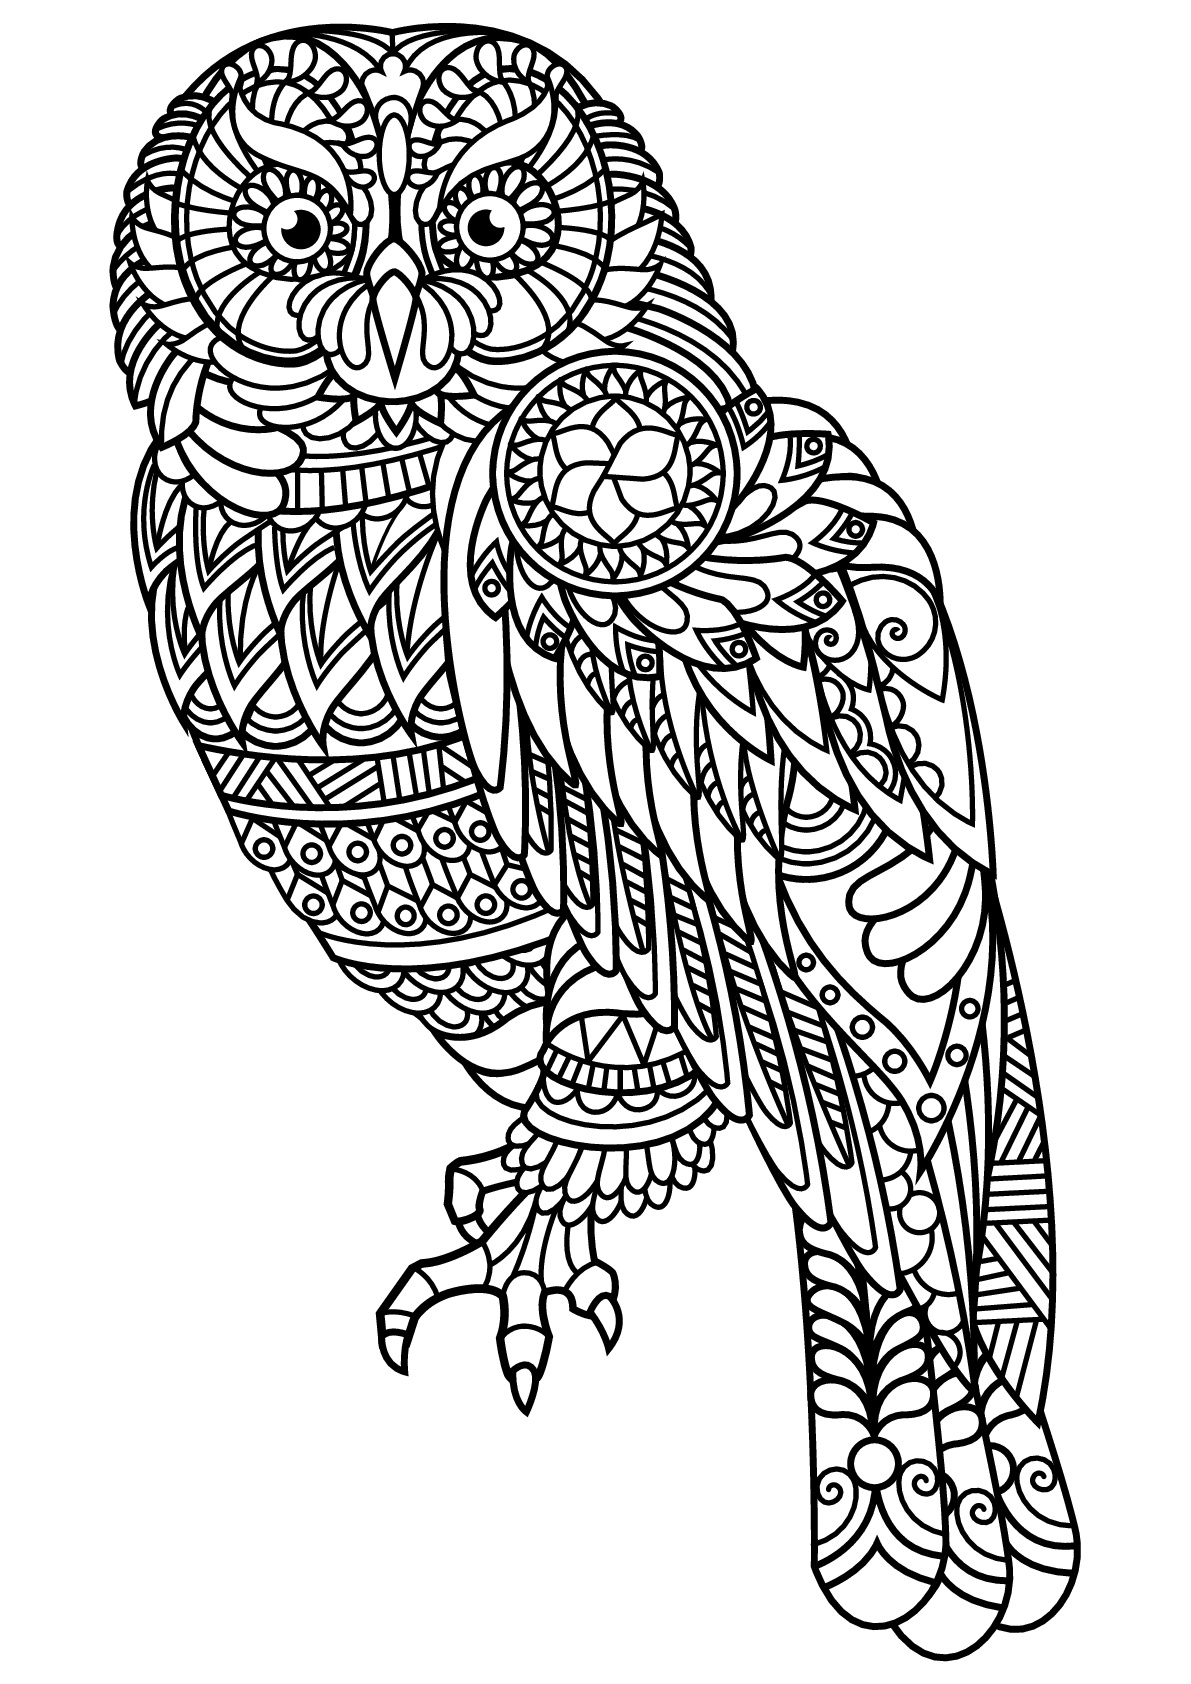 printable owl images free book owl owls adult coloring pages images owl printable